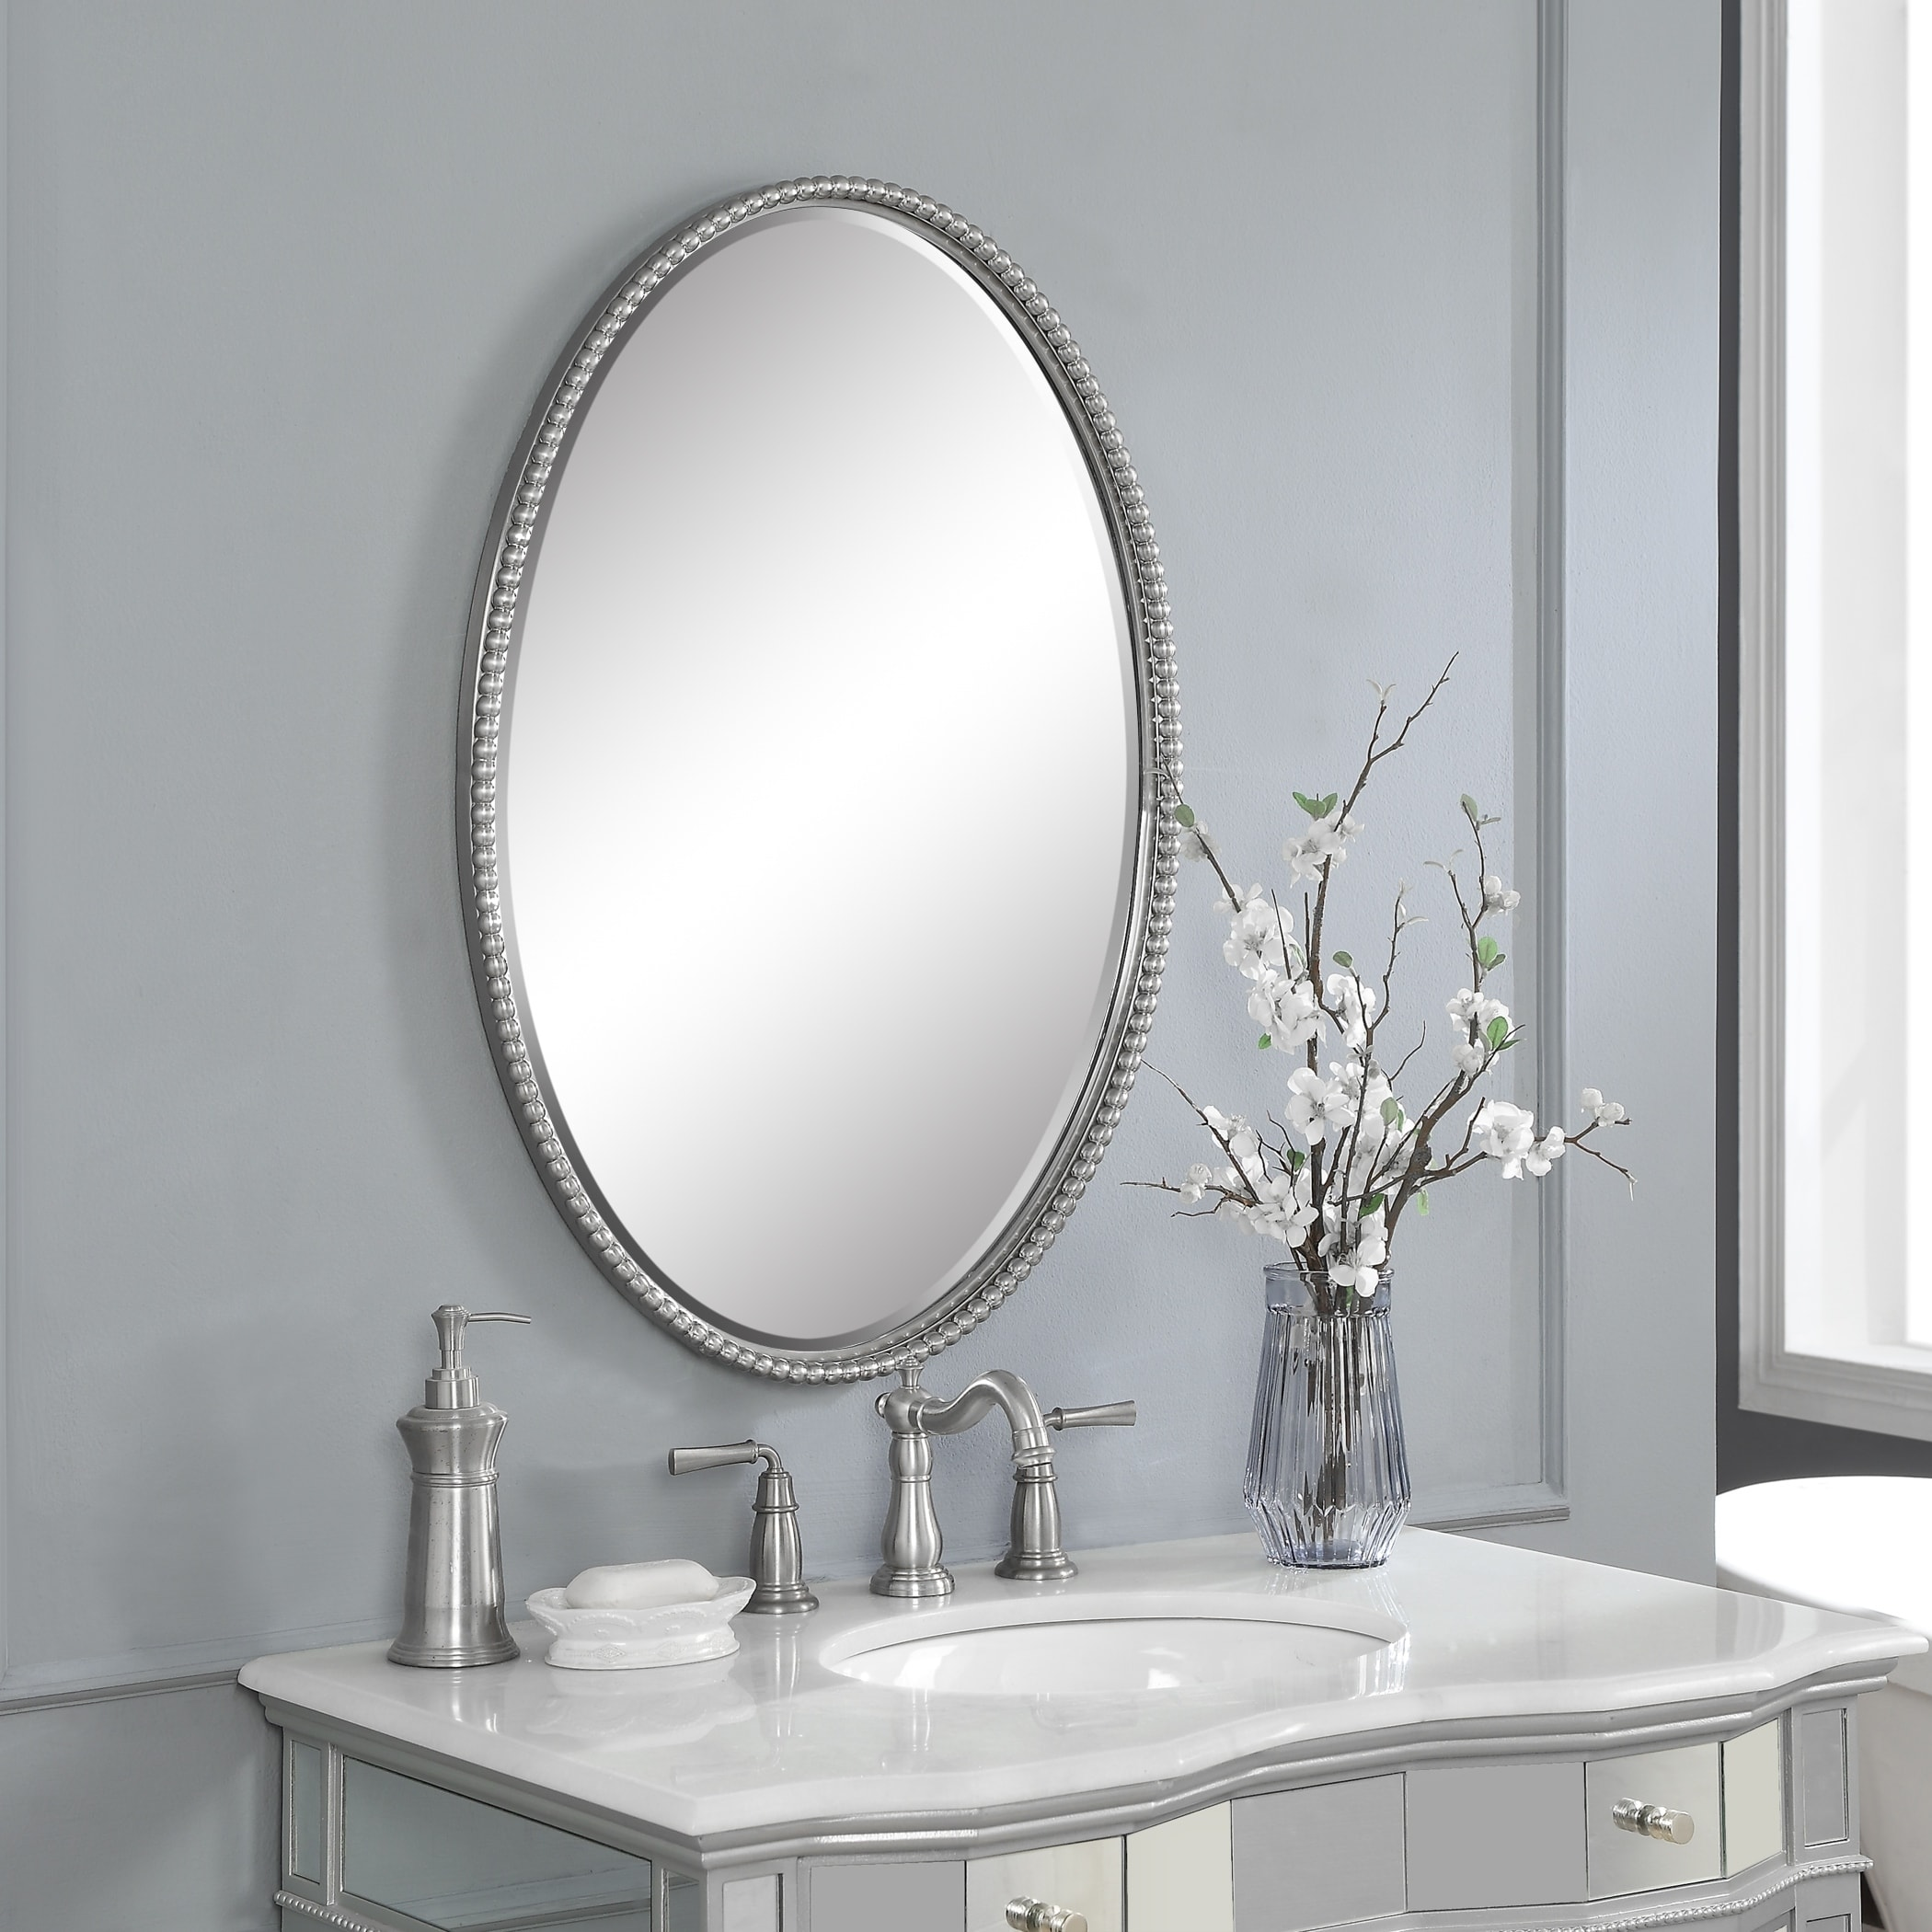 Uttermost Sherise Brushed Nickel Oval Mirror Brushed Nickel 22x32x1 75 Overstock 7896858